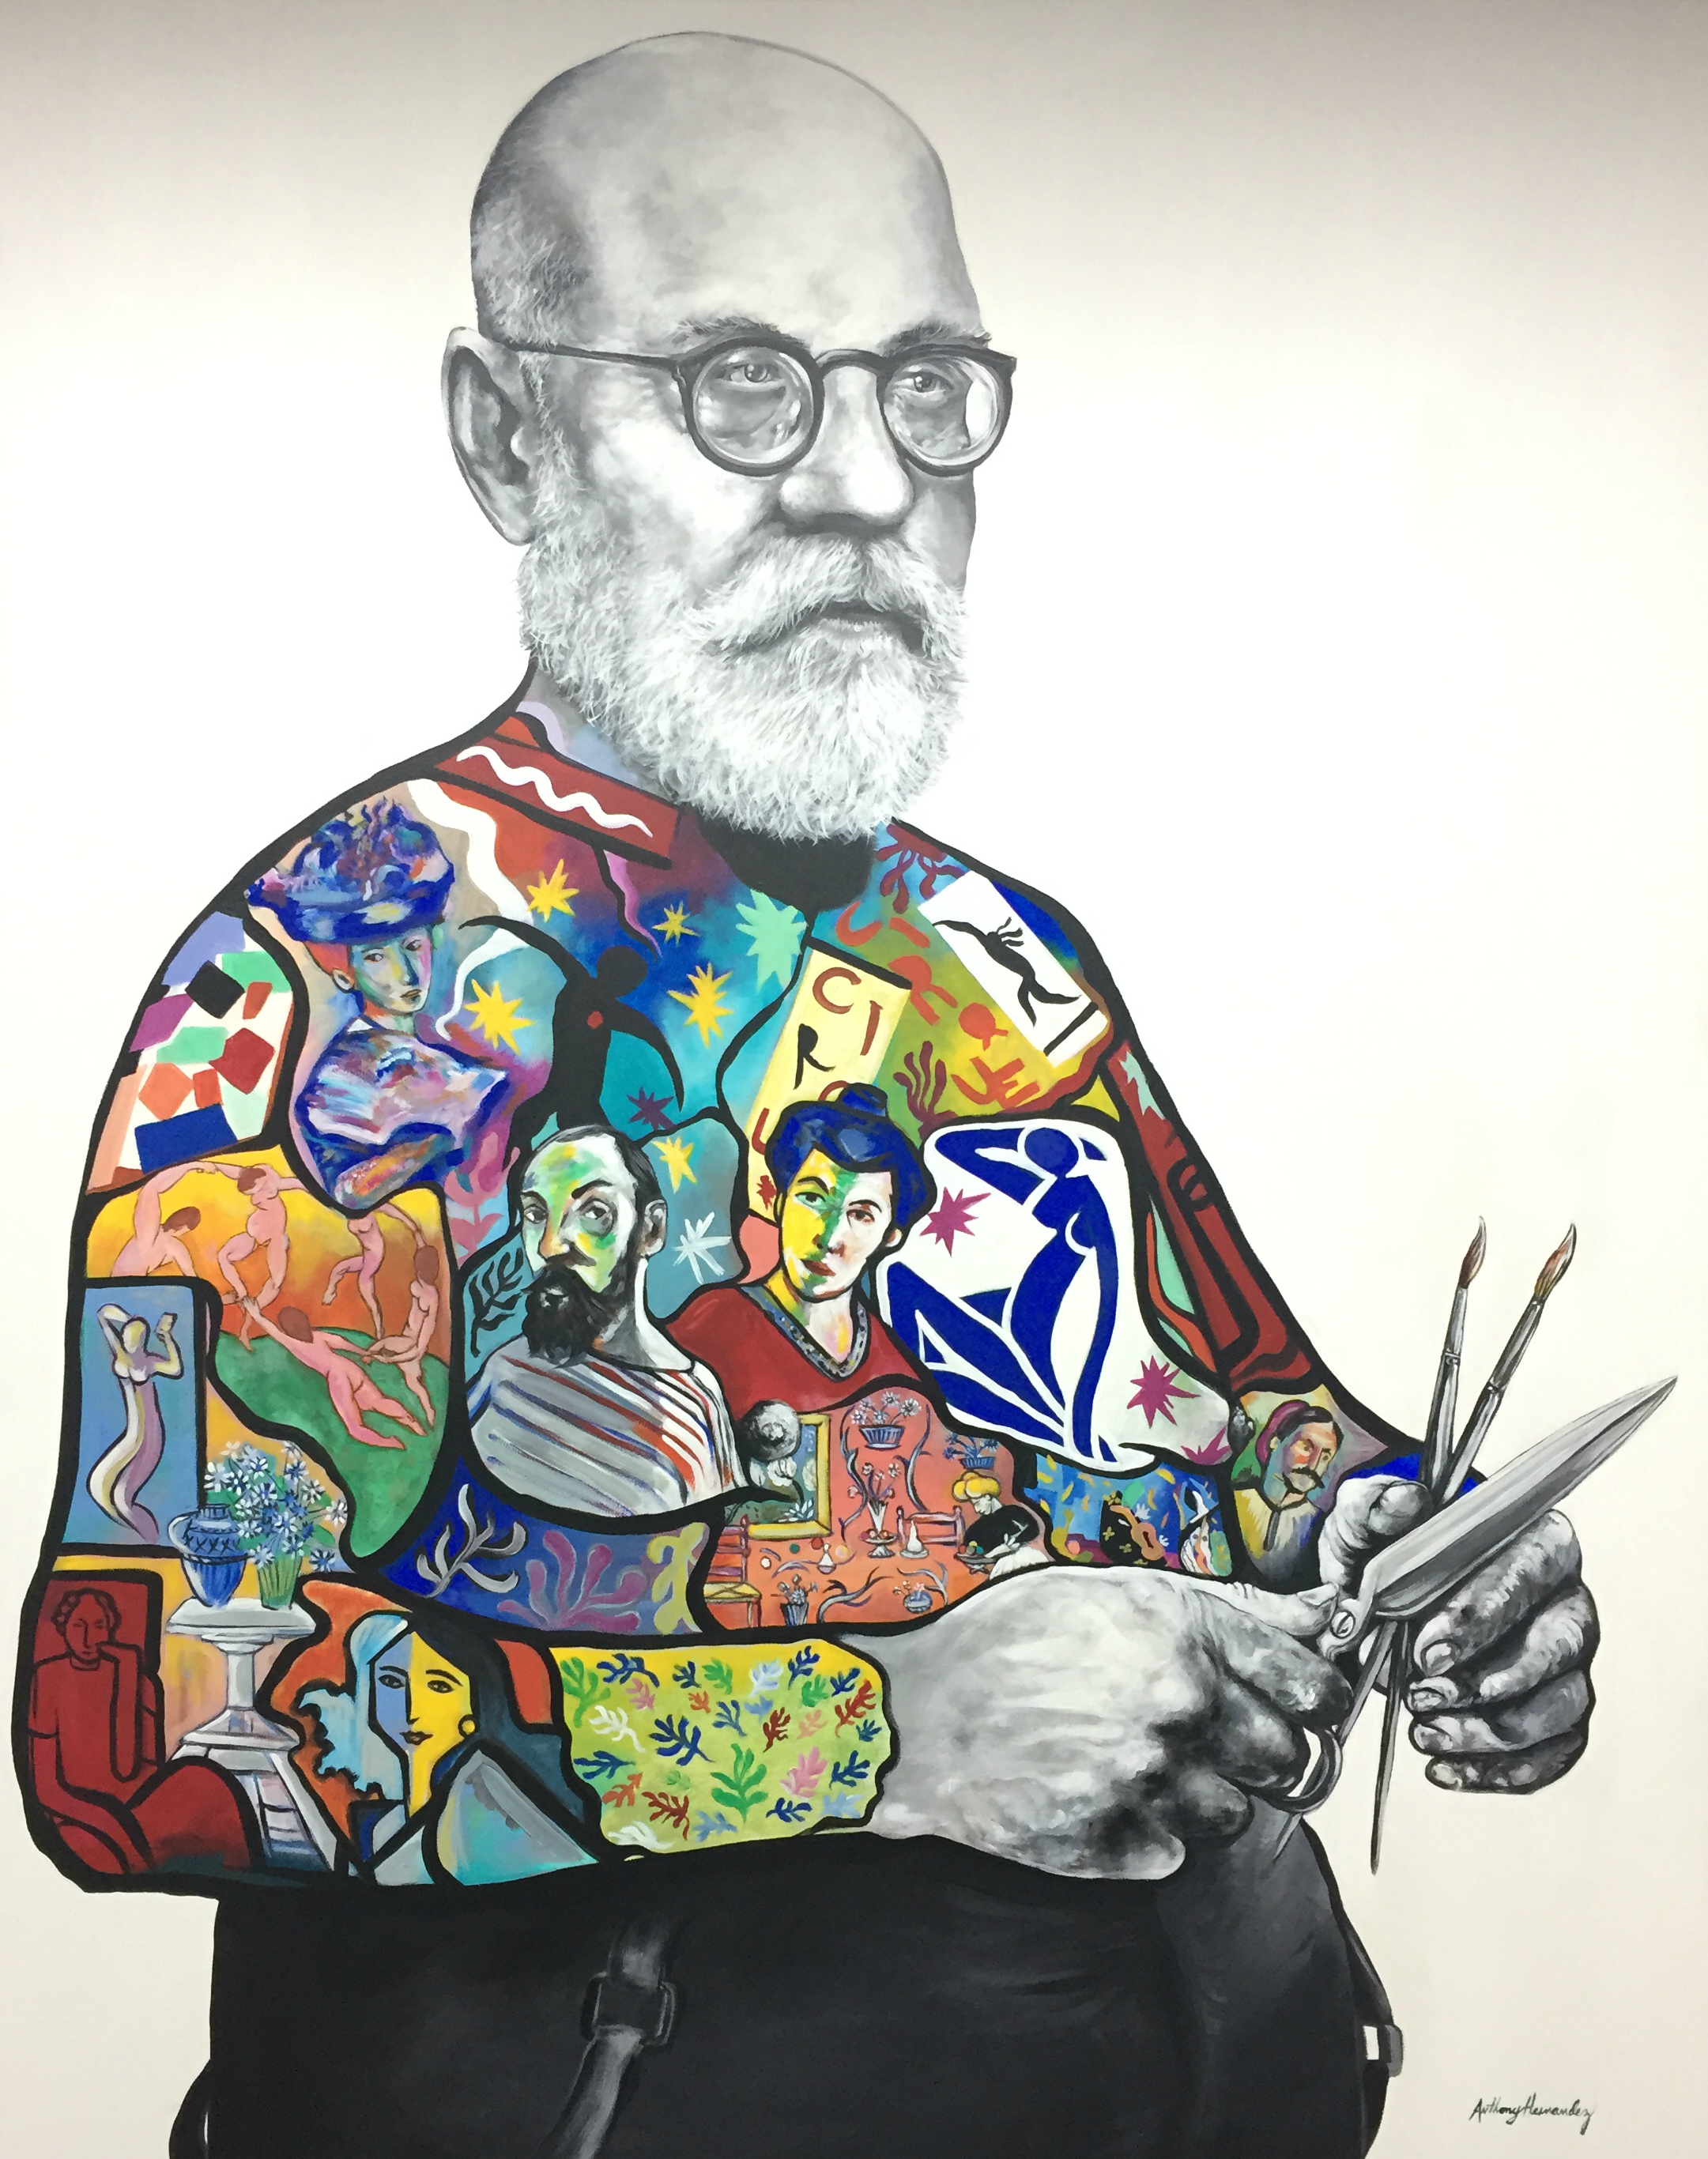 Henri Matisse by Anthony Hernandez, https://www.anthonyhernandezart.com/